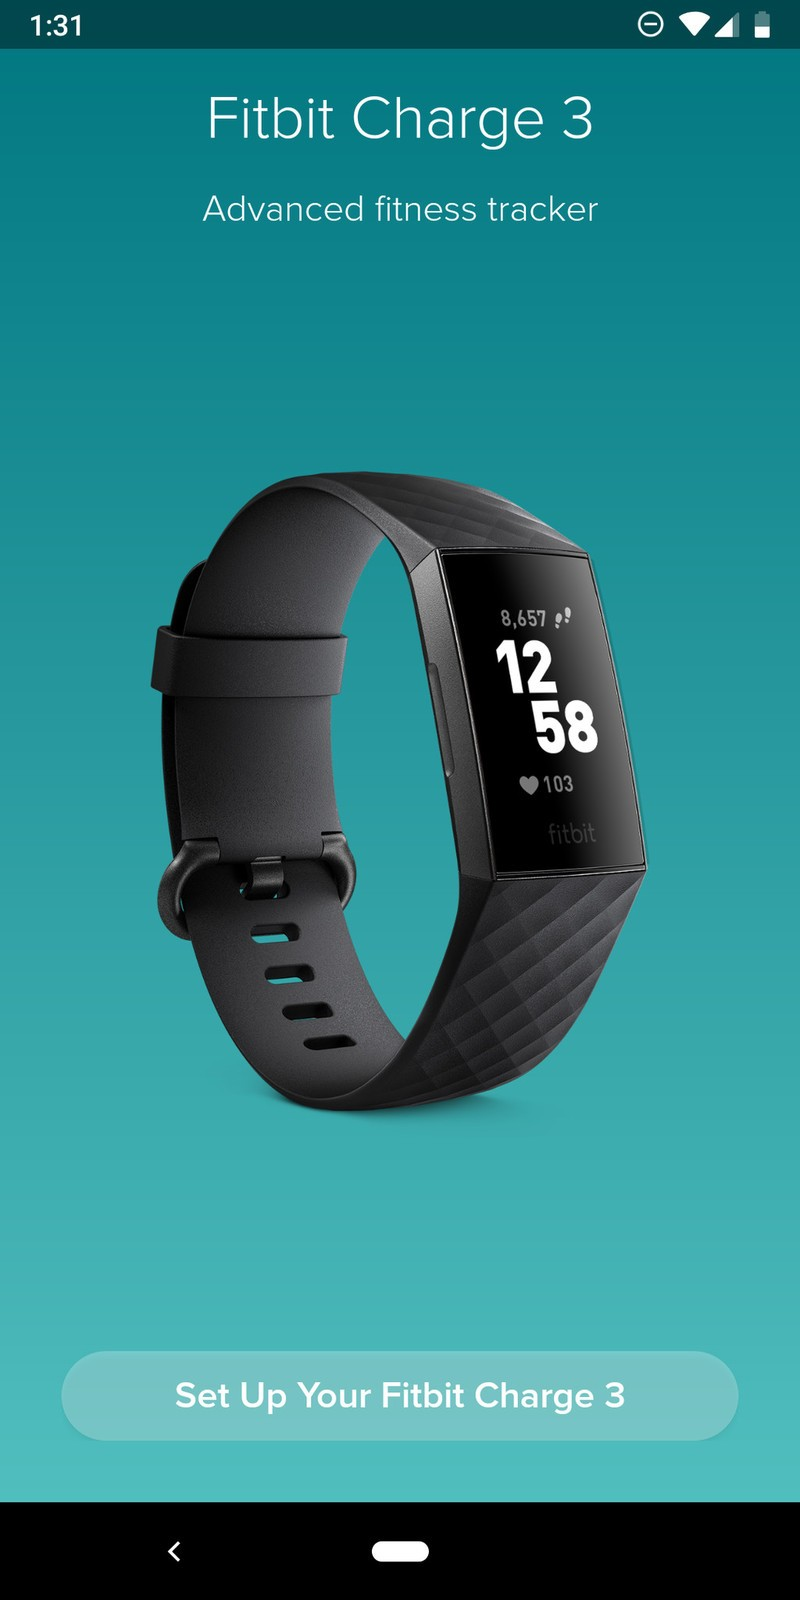 how-to-set-up-fitbit-charge-3-11.jpg?ito